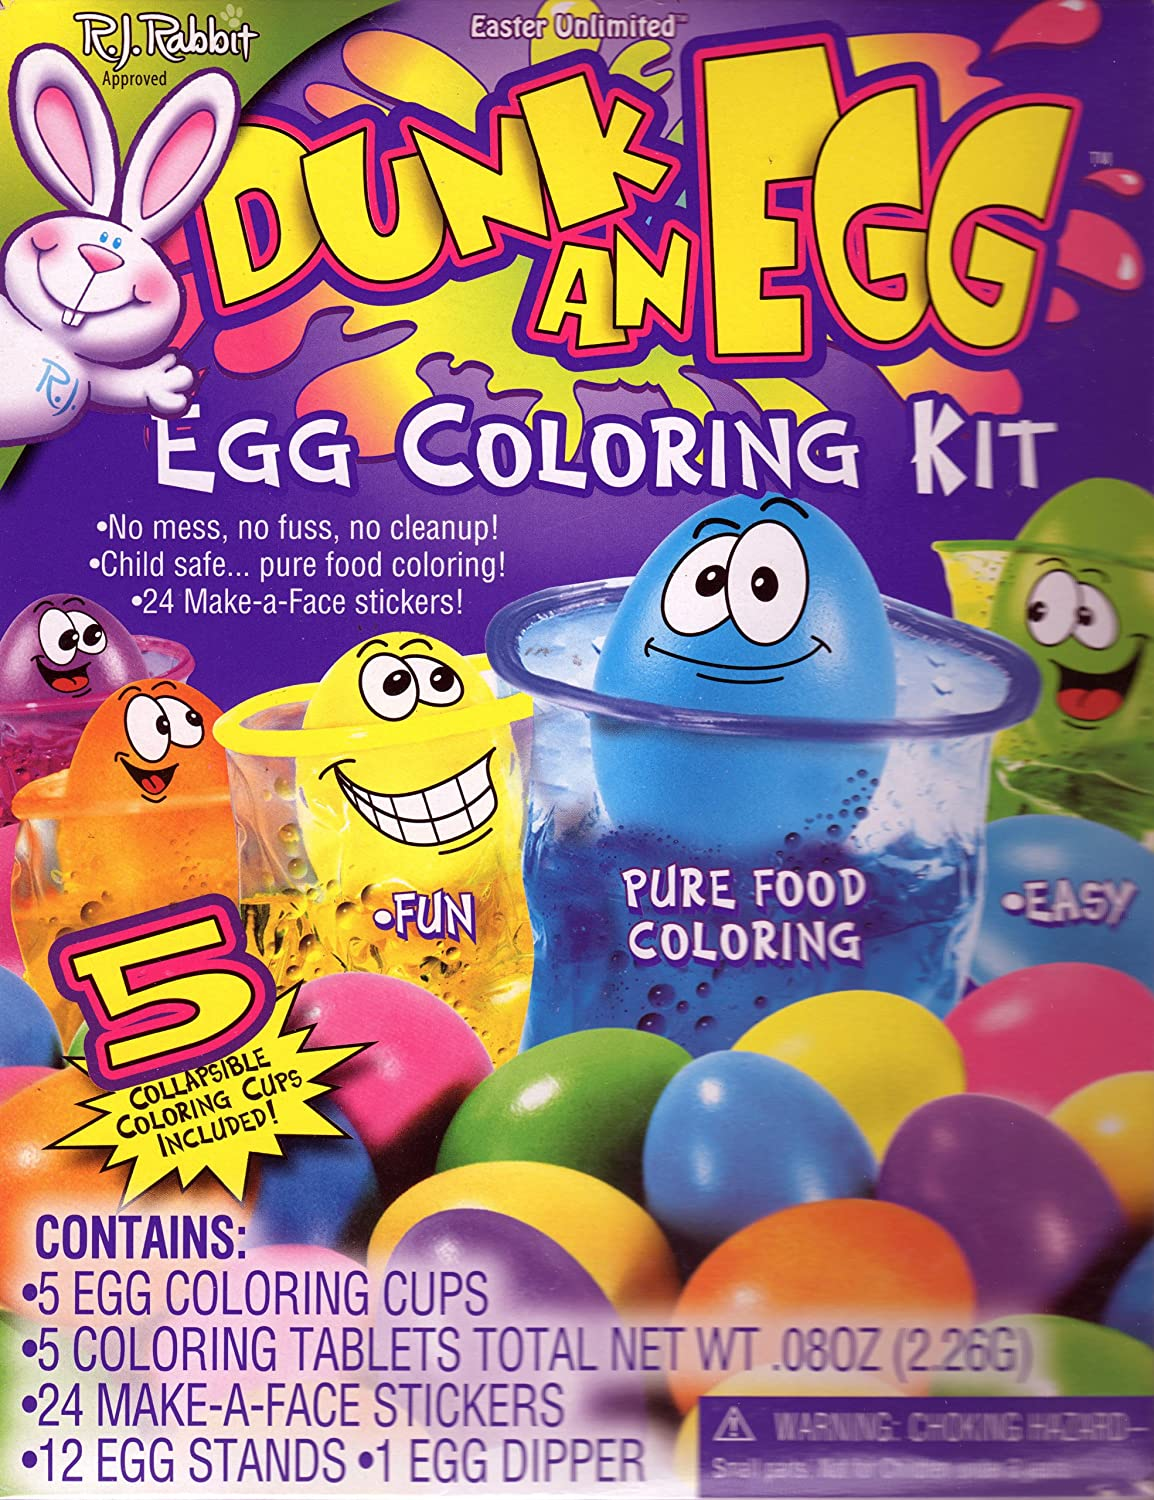 Easter Unlimited Dunk An Egg Coloring Kit